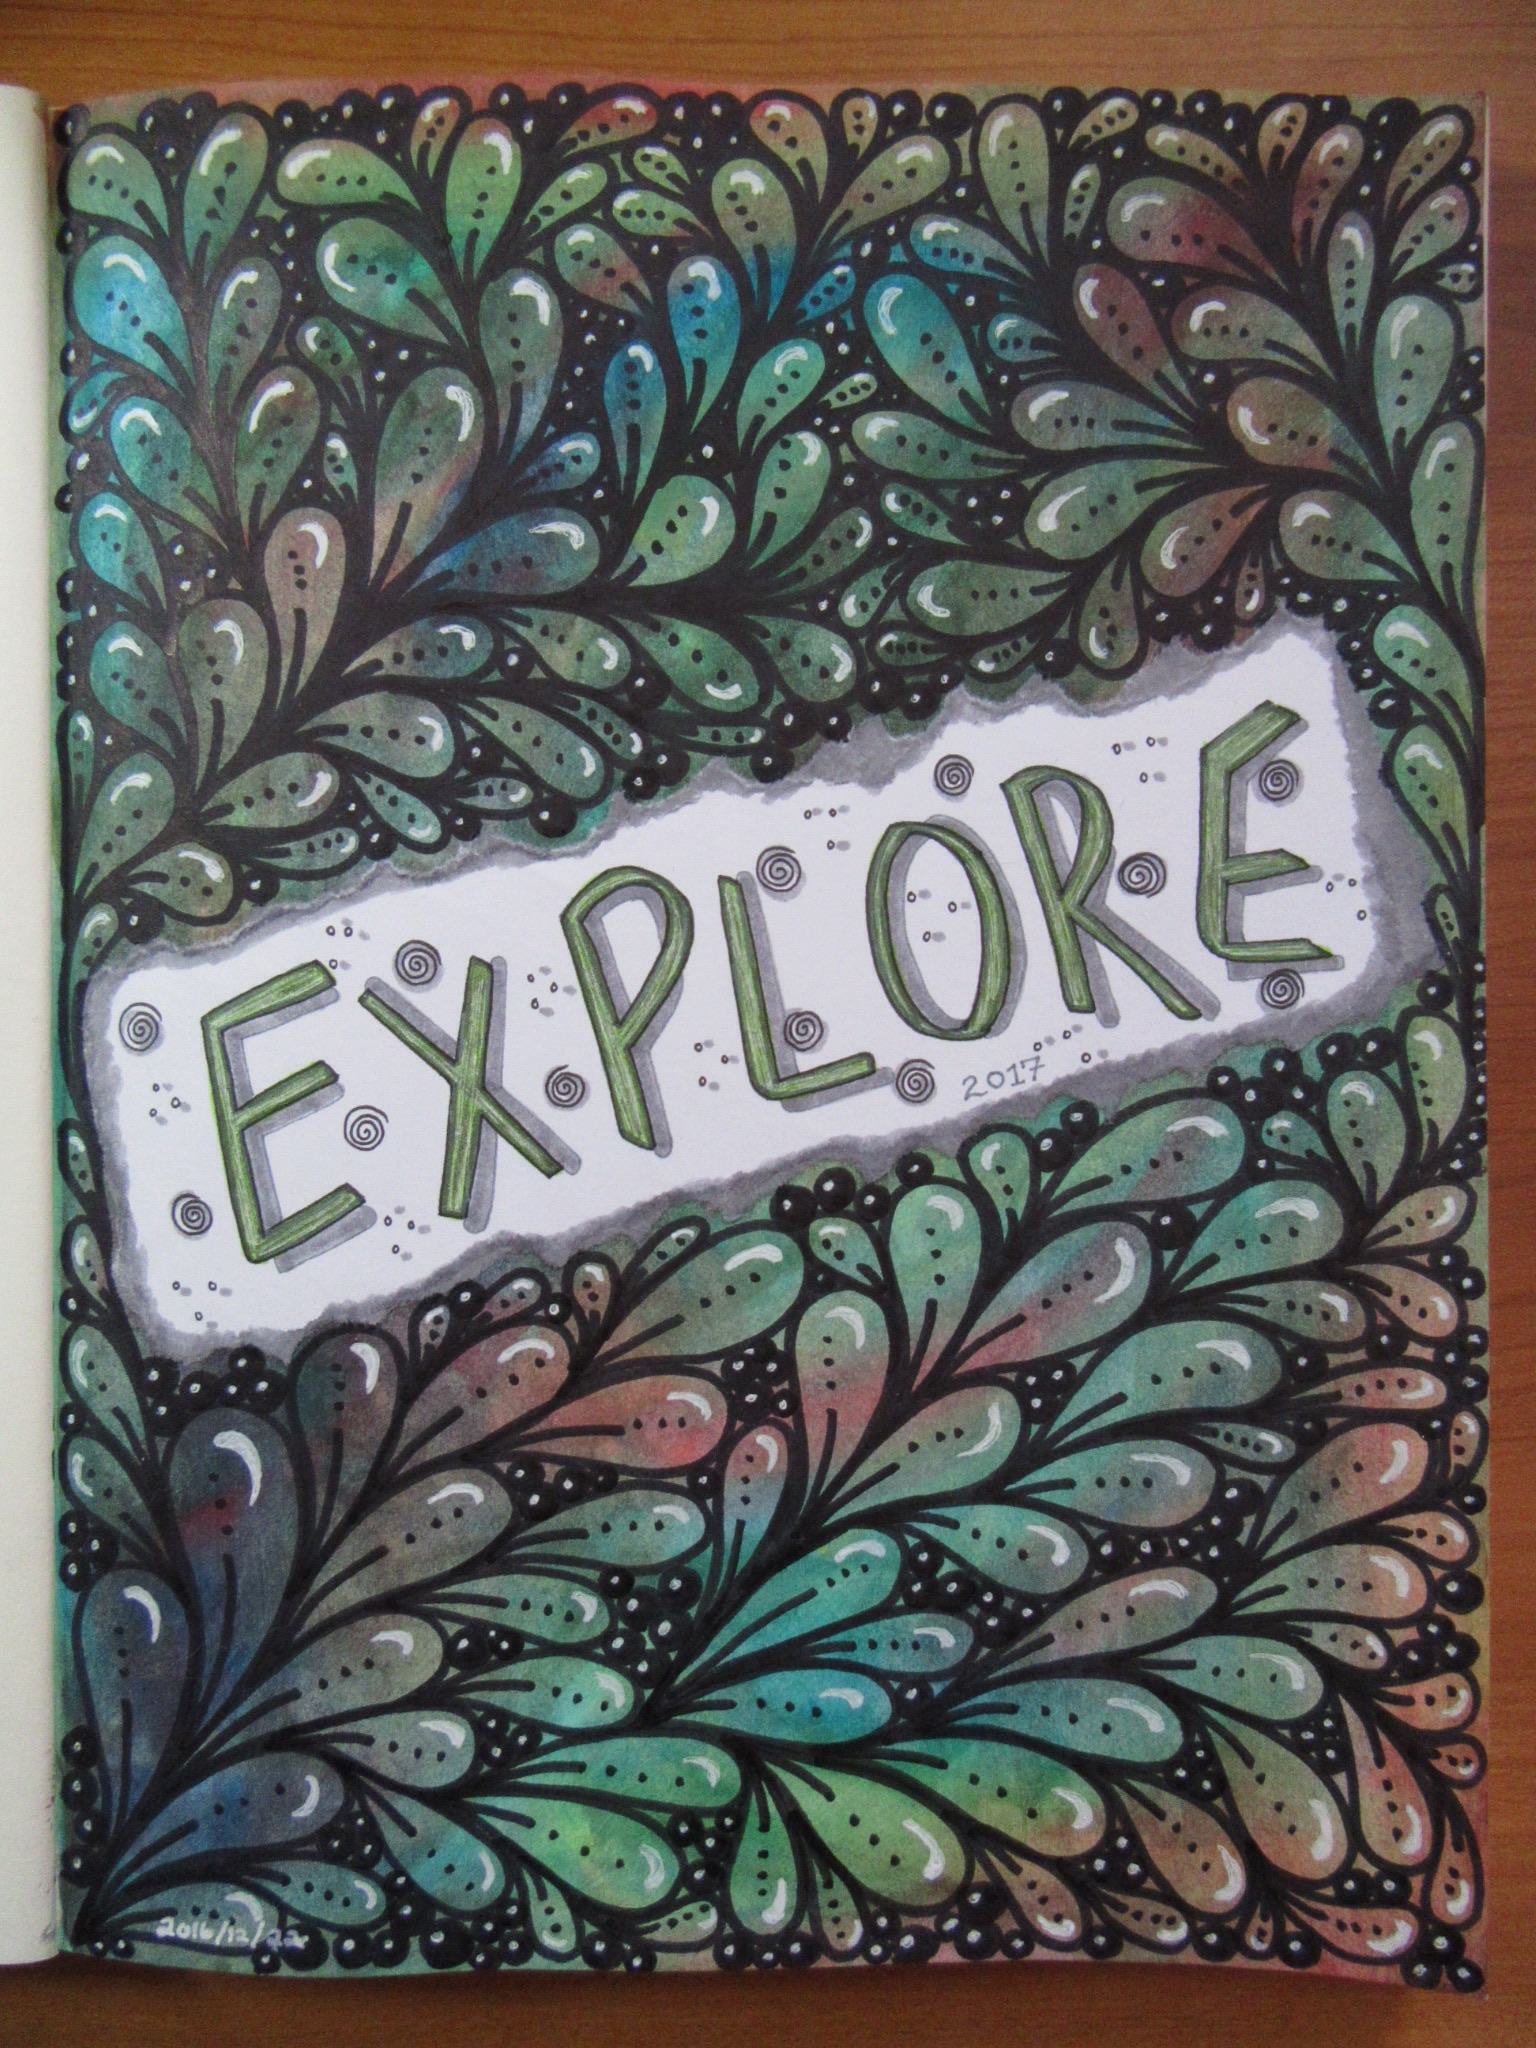 My 2017 Word of the Year - Explore